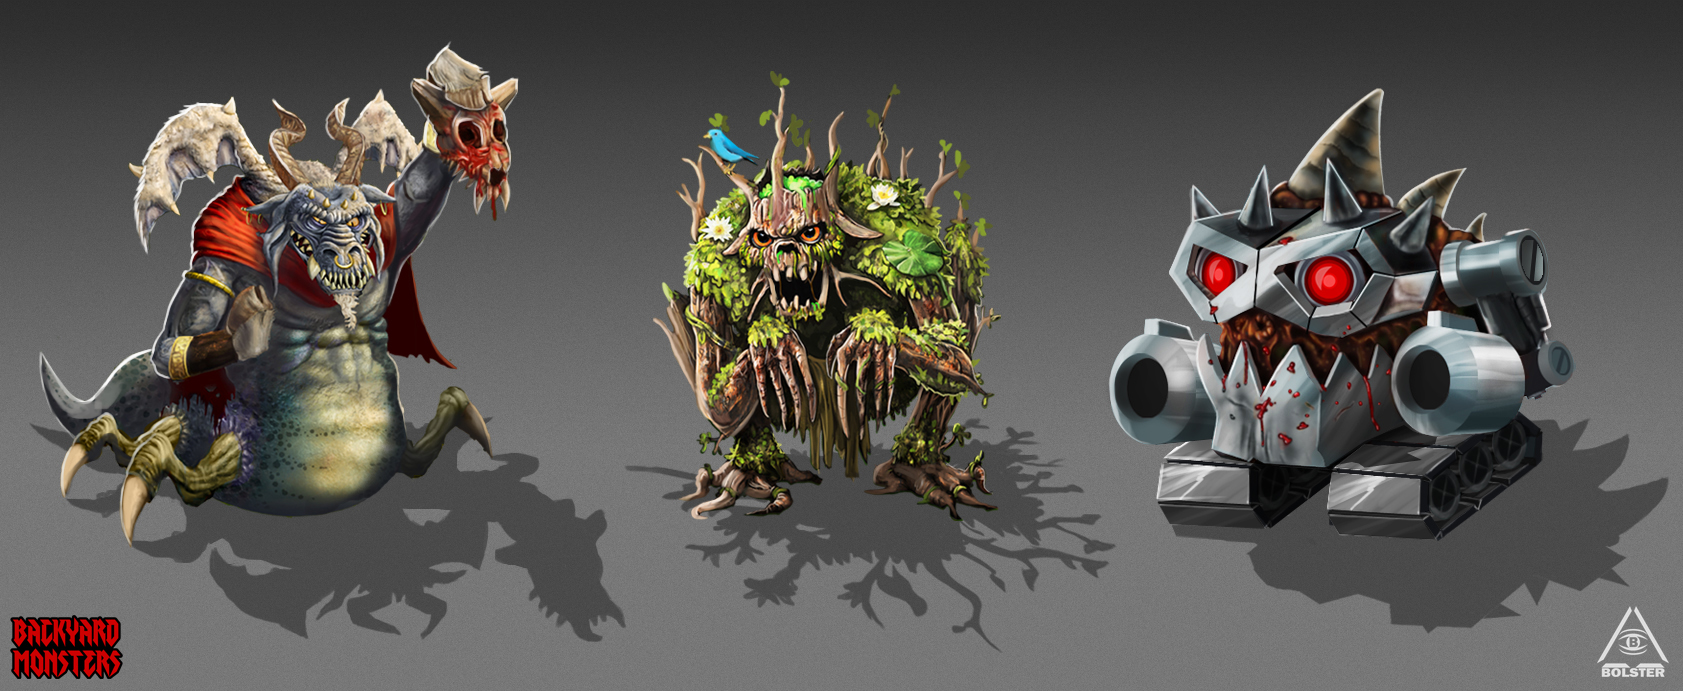 game development art 2d game art characters animals monsters 2014 2017